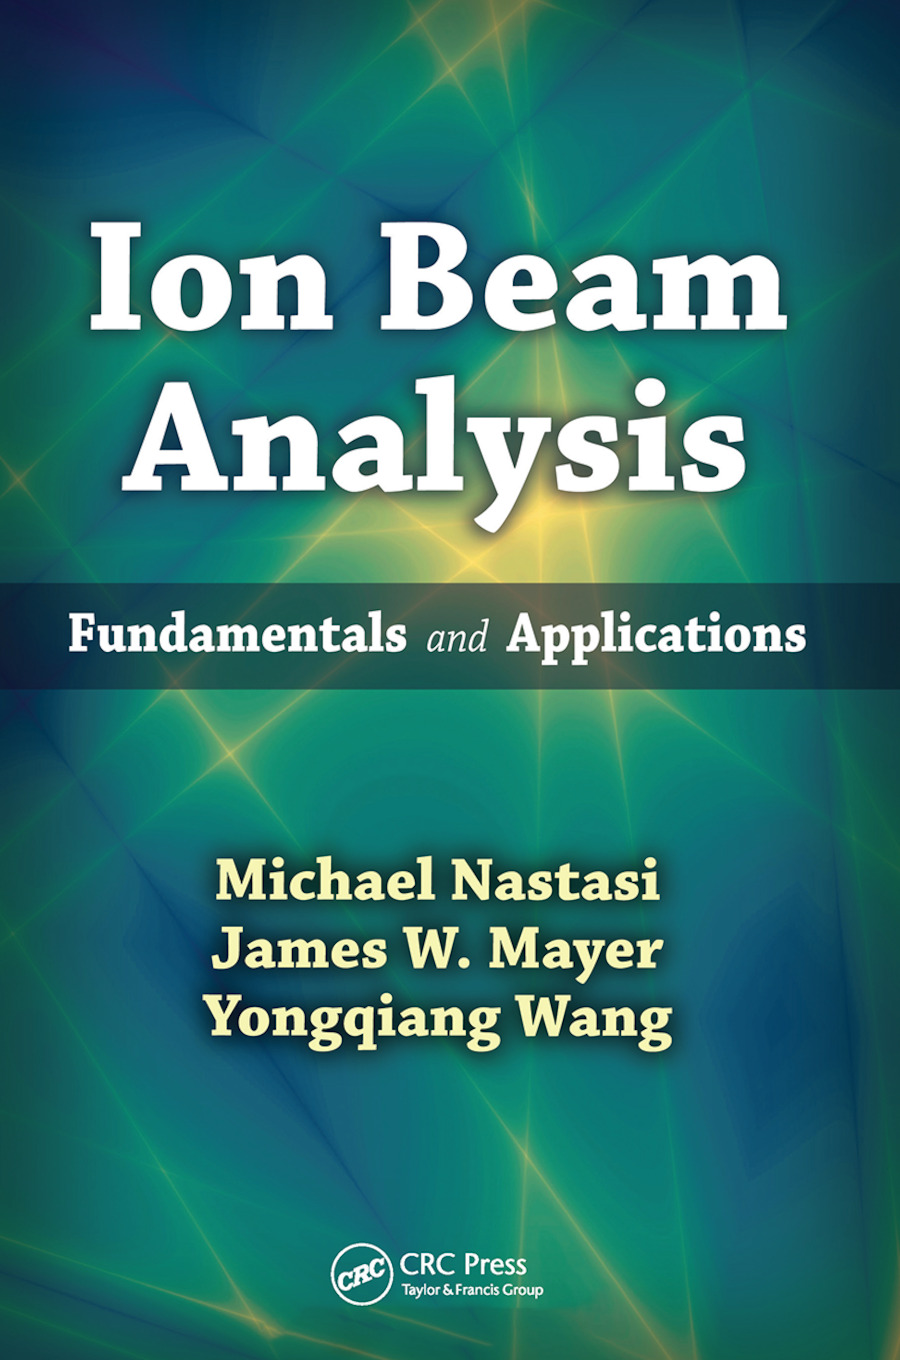 Ion Beam Analysis: Fundamentals and Applications book cover